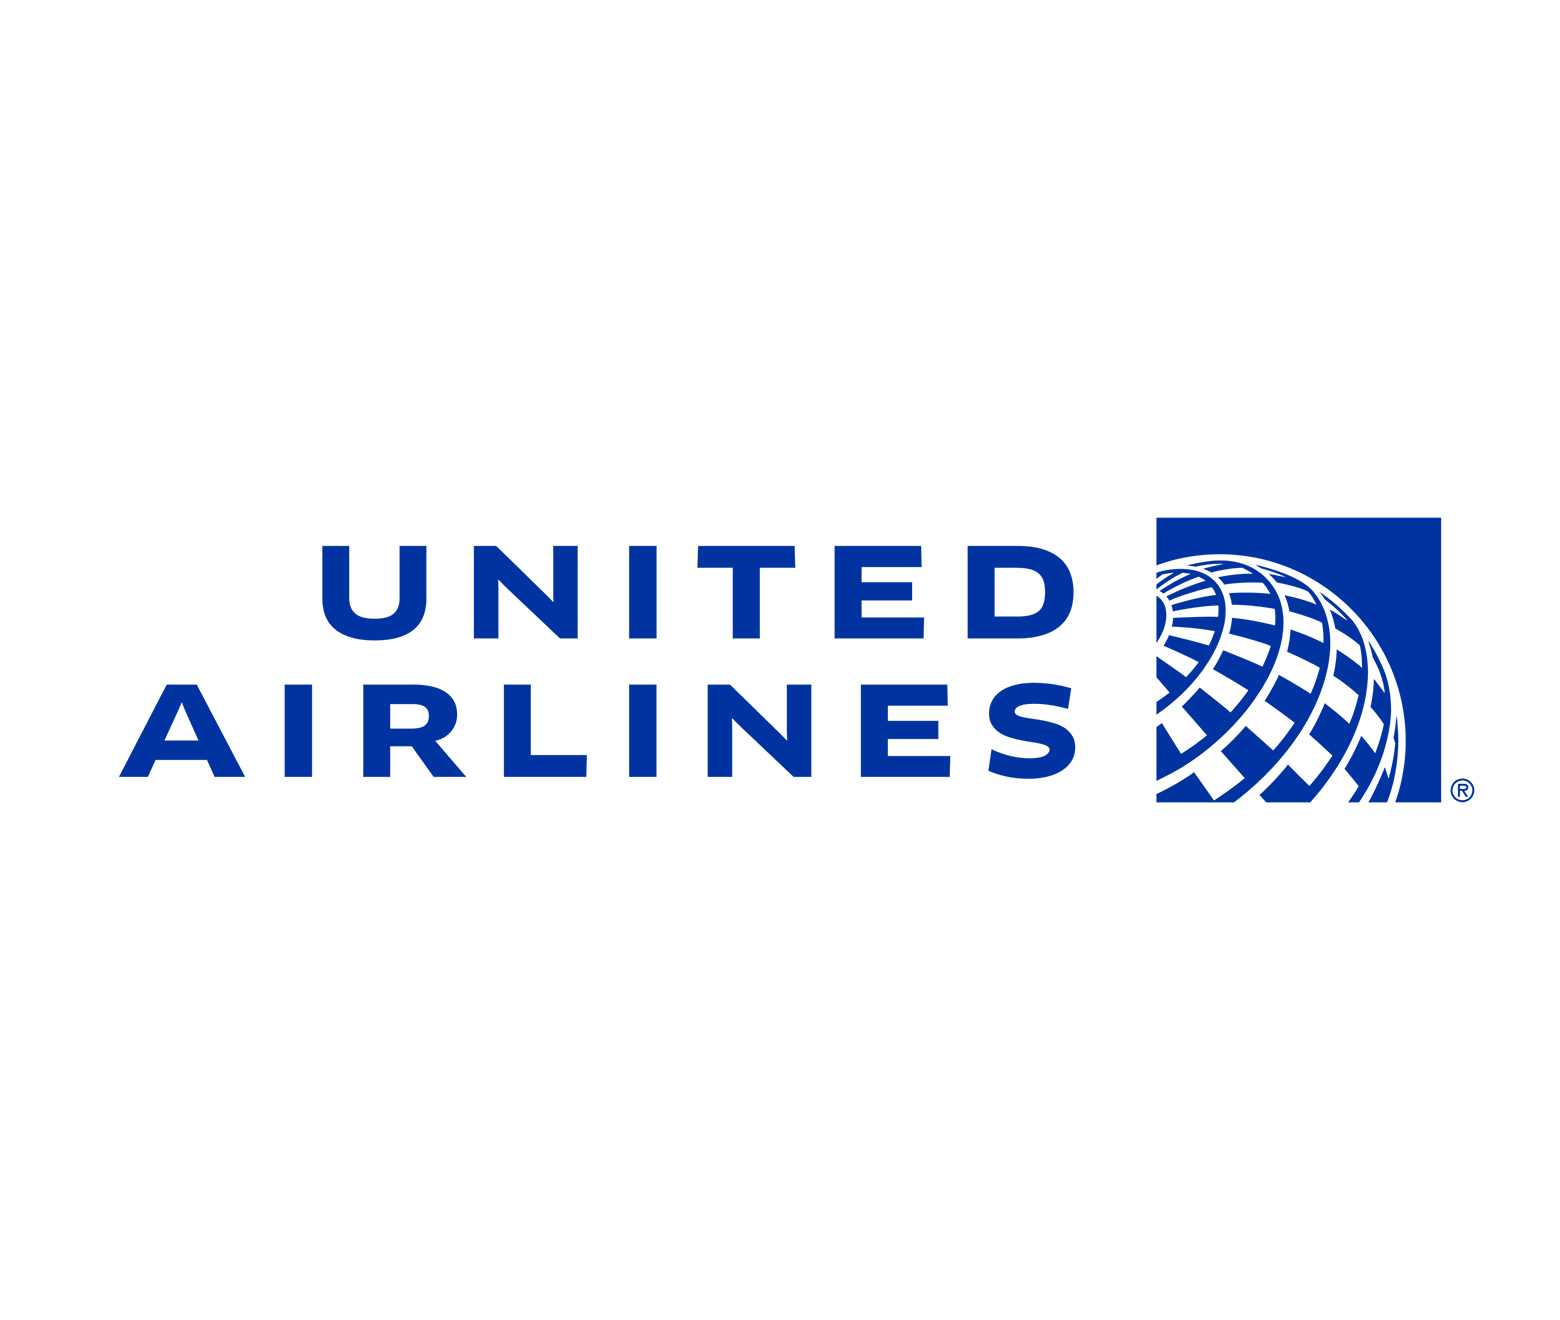 airline-united-airlines